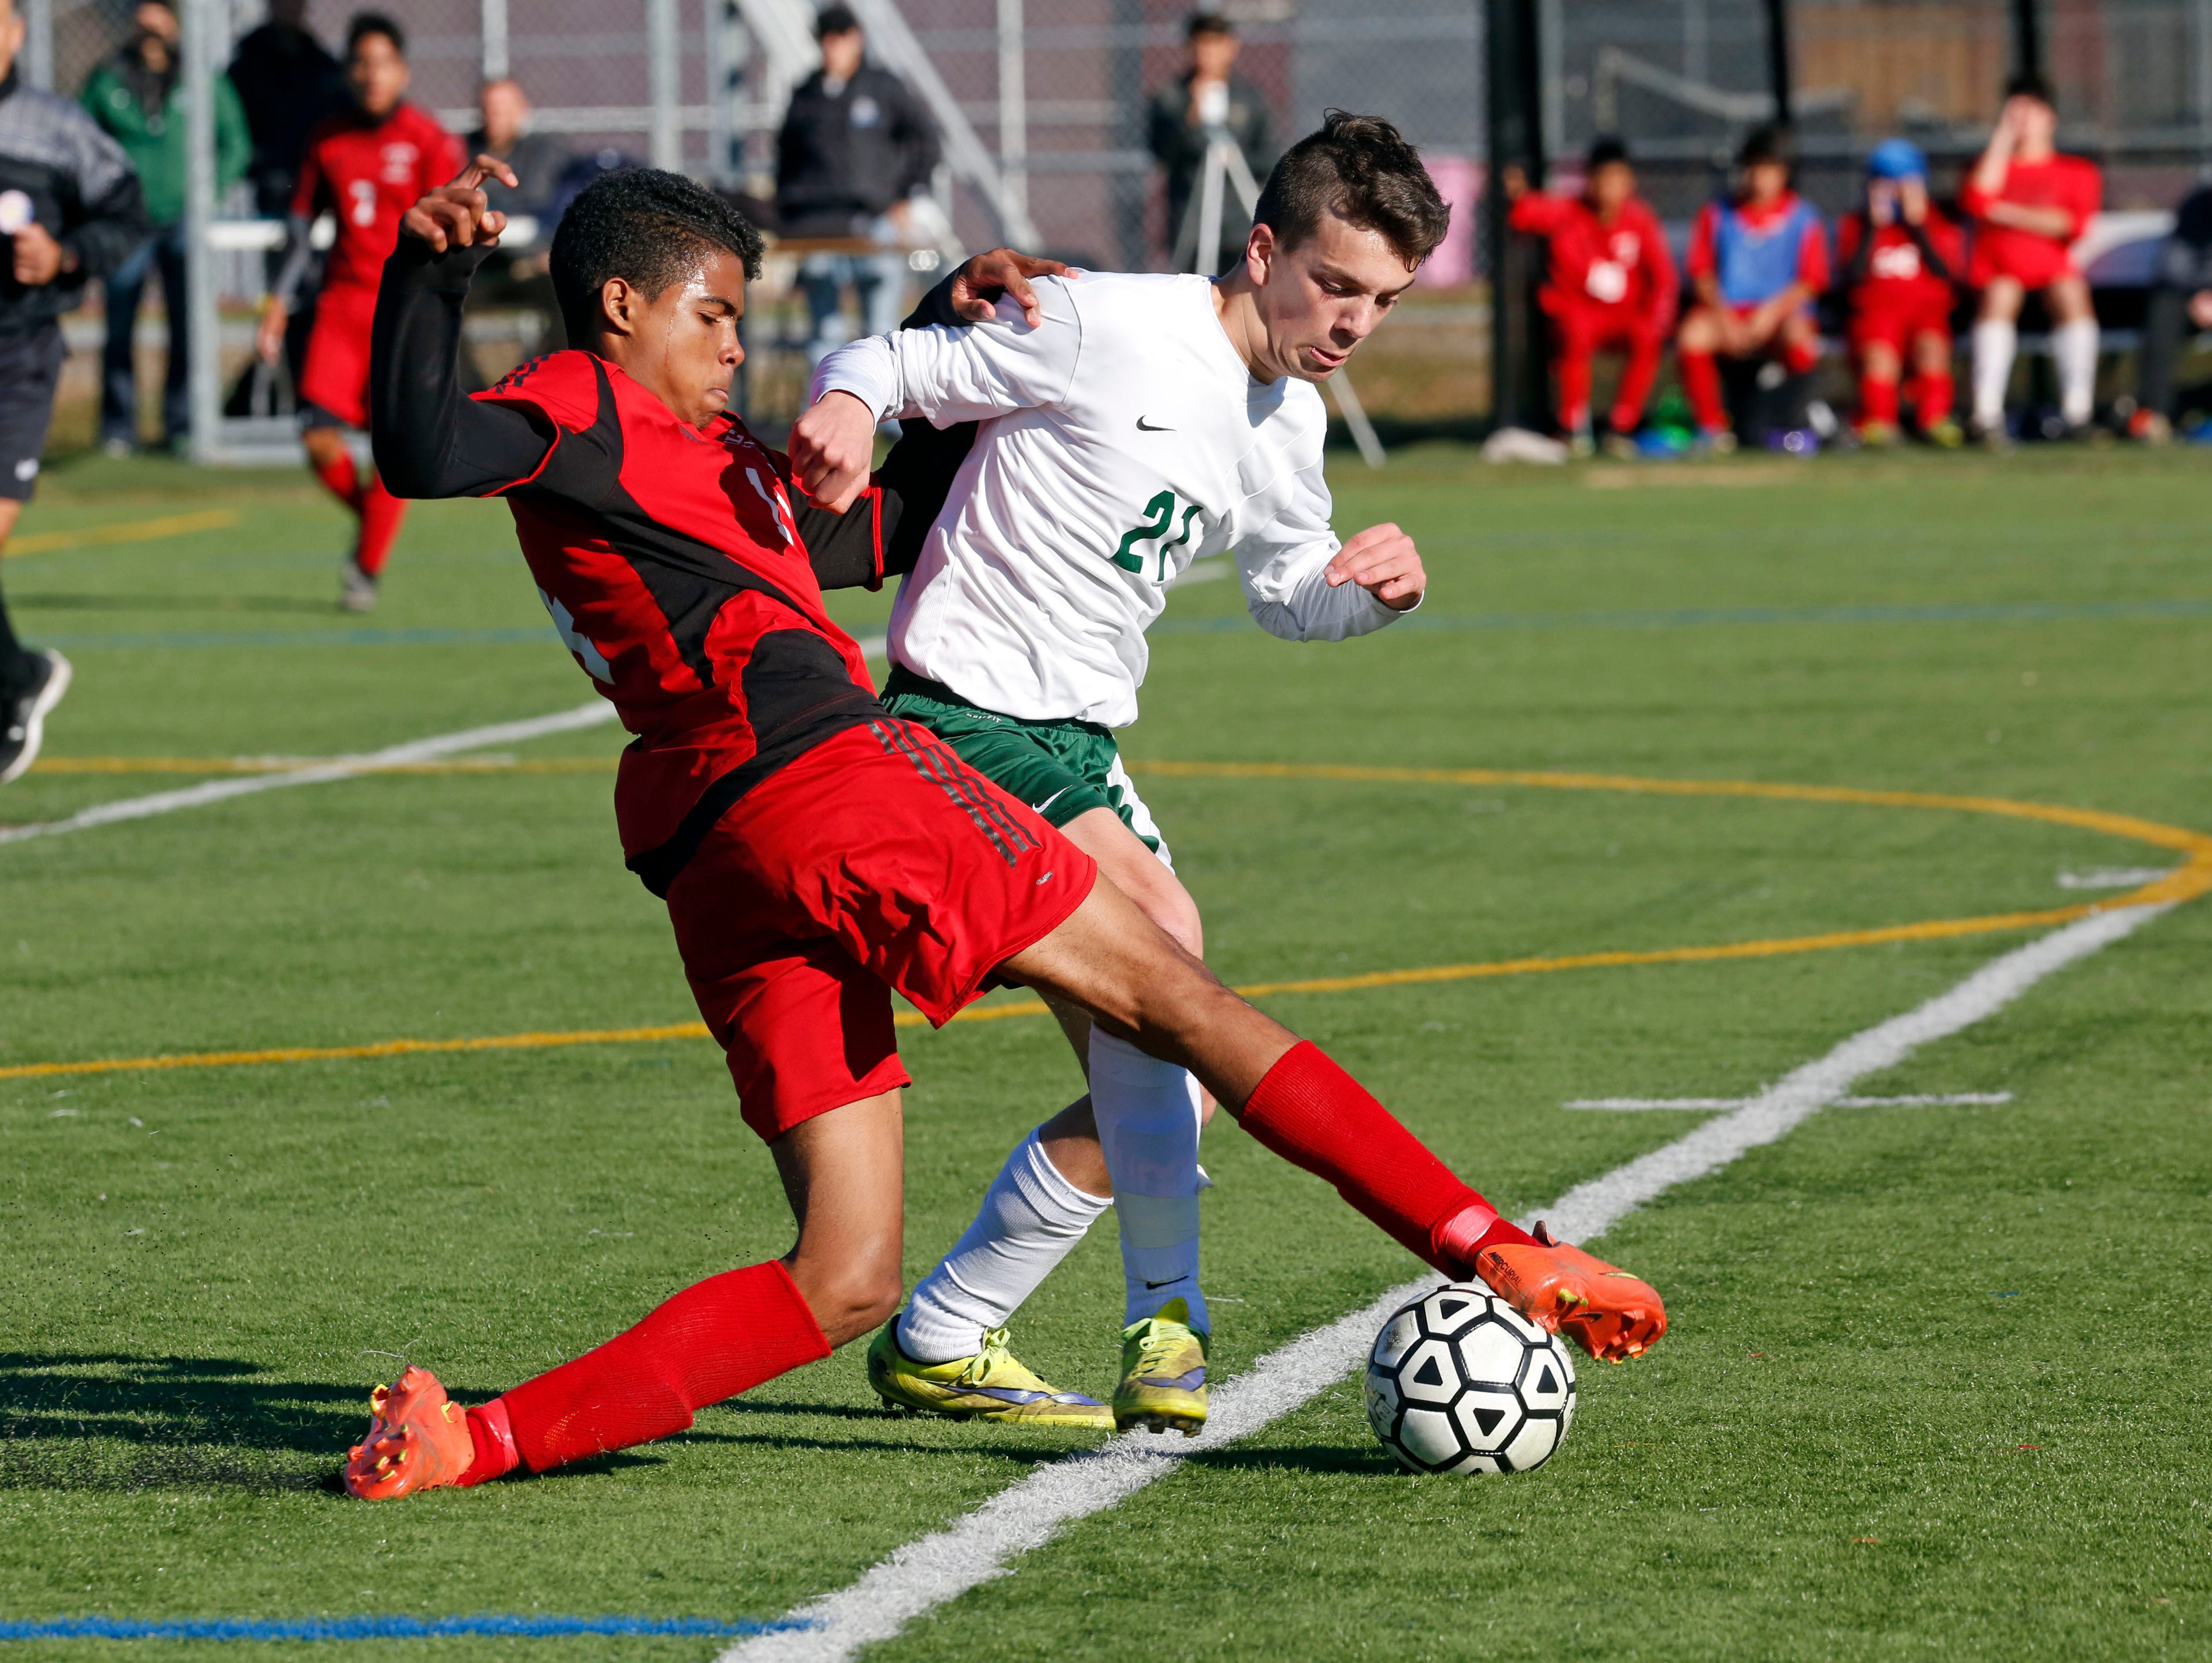 Hamilton's Christian Sanchez and Solomon Schechter's Cameron Roth battle for possession during the Class C boys soccer final Oct. 30, 2015 at Arlington High School in Lagrangeville. Solomon Schechter won, 2-1, in overtime.